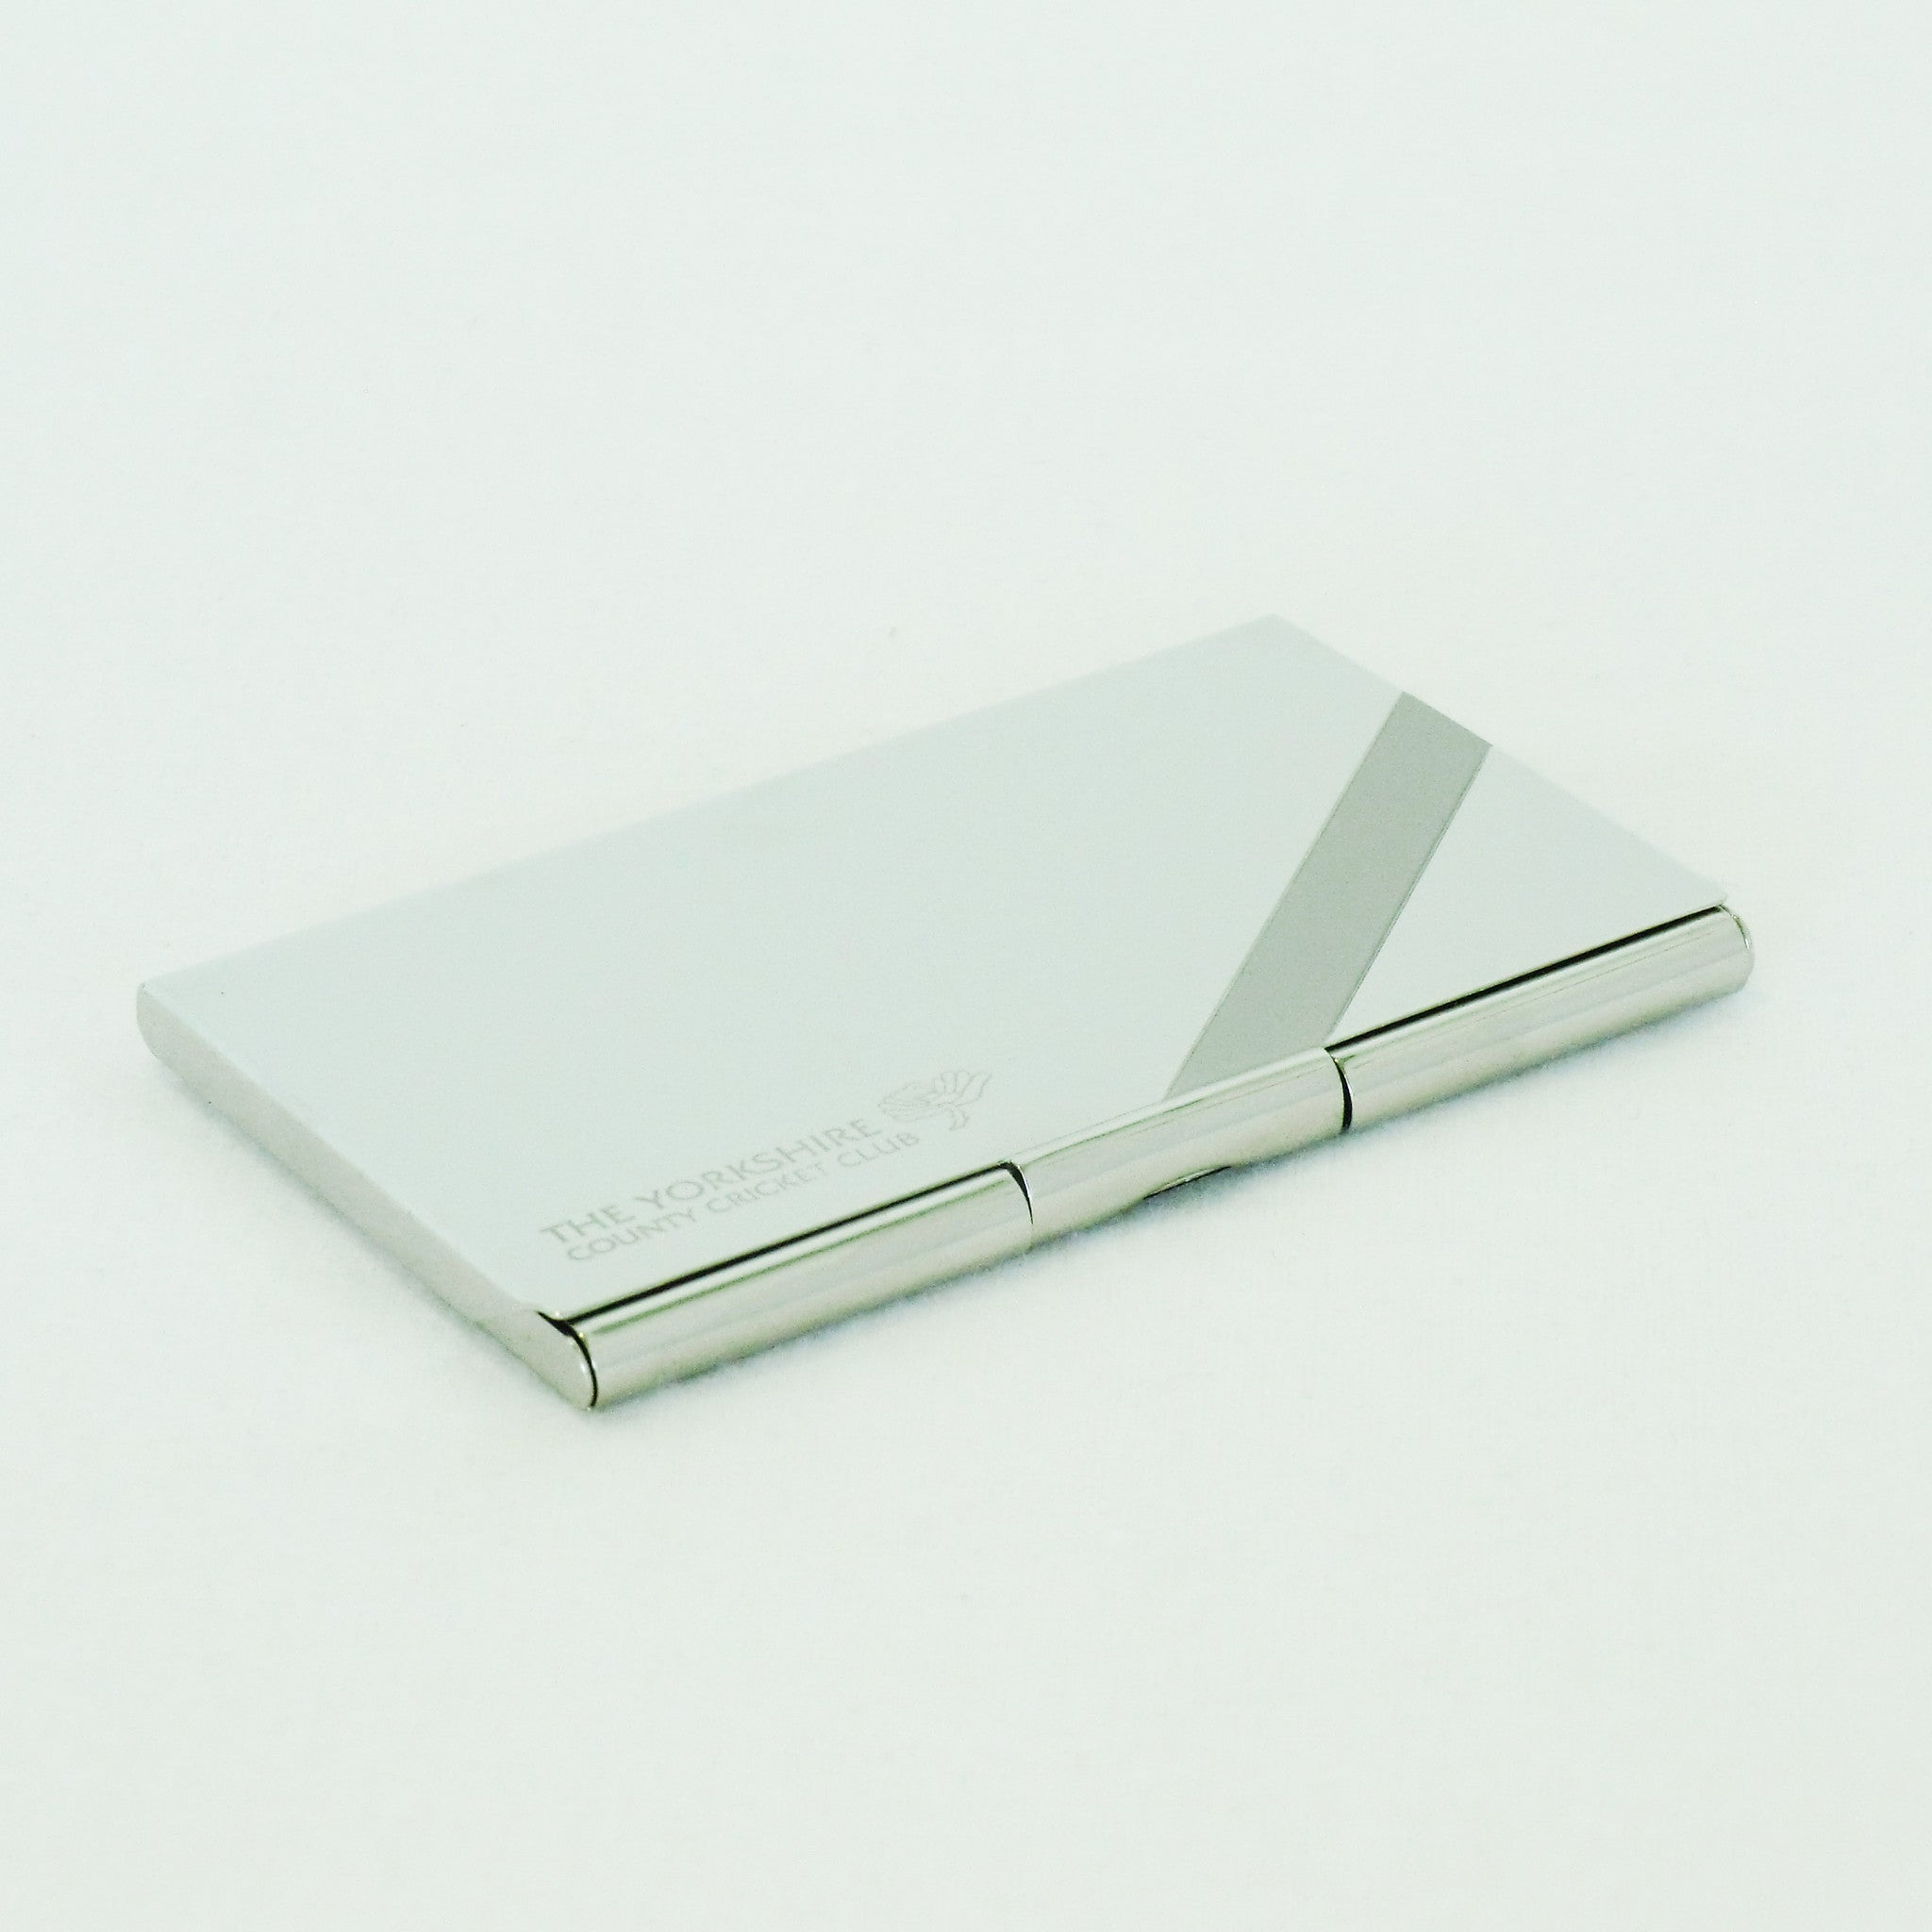 yorkshire ccc silver business card holder - Silver Business Card Holder